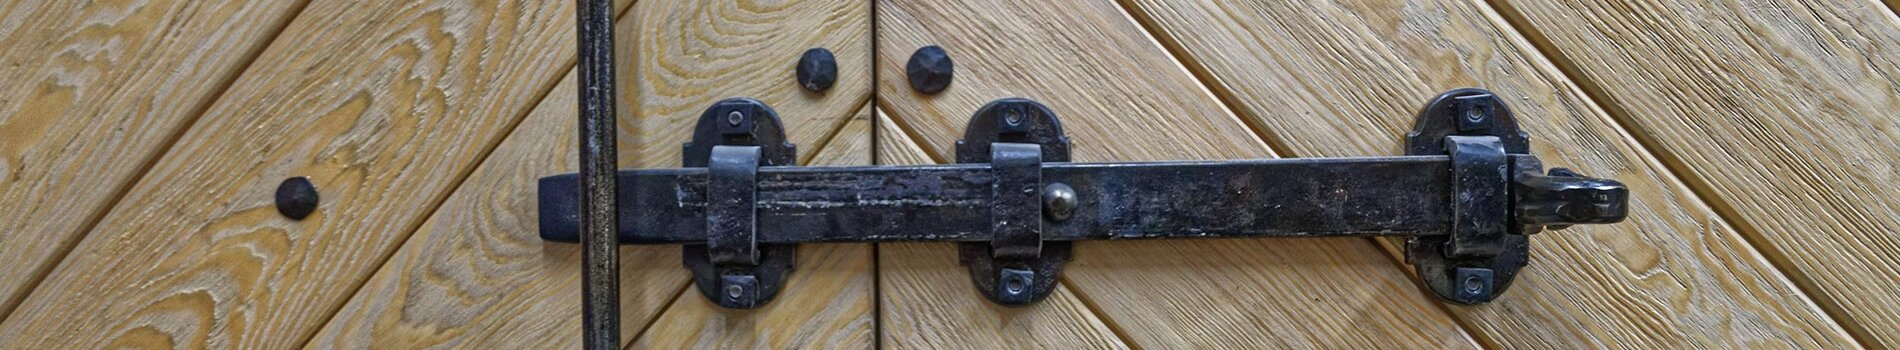 Joinery contact